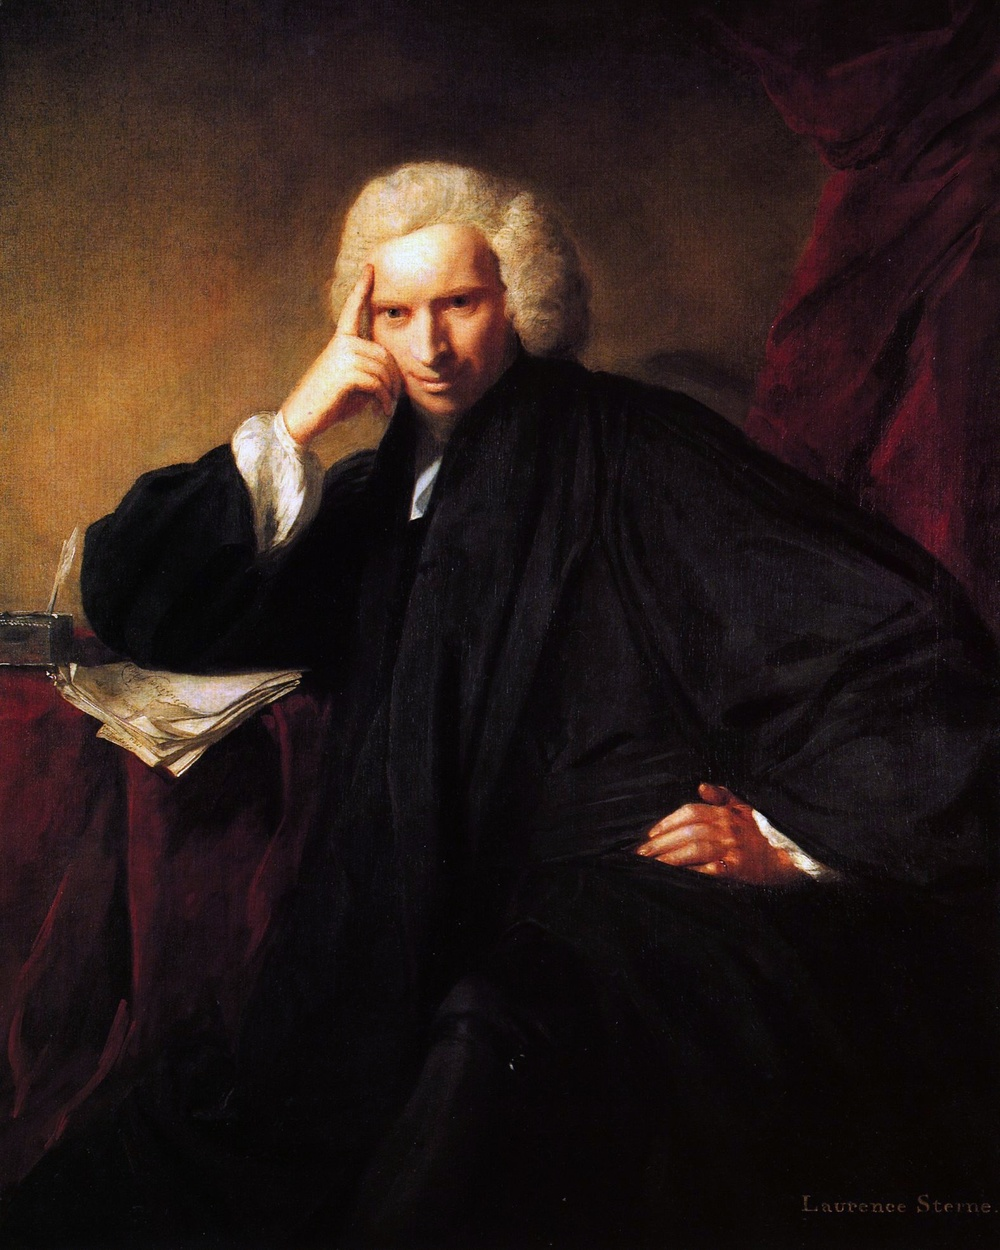 Laurence Sterne, by Joshua Reynolds.  Original at the National Portrait Gallery, London (NPG 5019).  We usually assume that under Sterne's elbow is the finished manuscript of the first two volumes of his Tristram Shandy-- but, as it is a book that famously struggled to get started, it might just as well be that we are capturing him, here, having just conceived it.